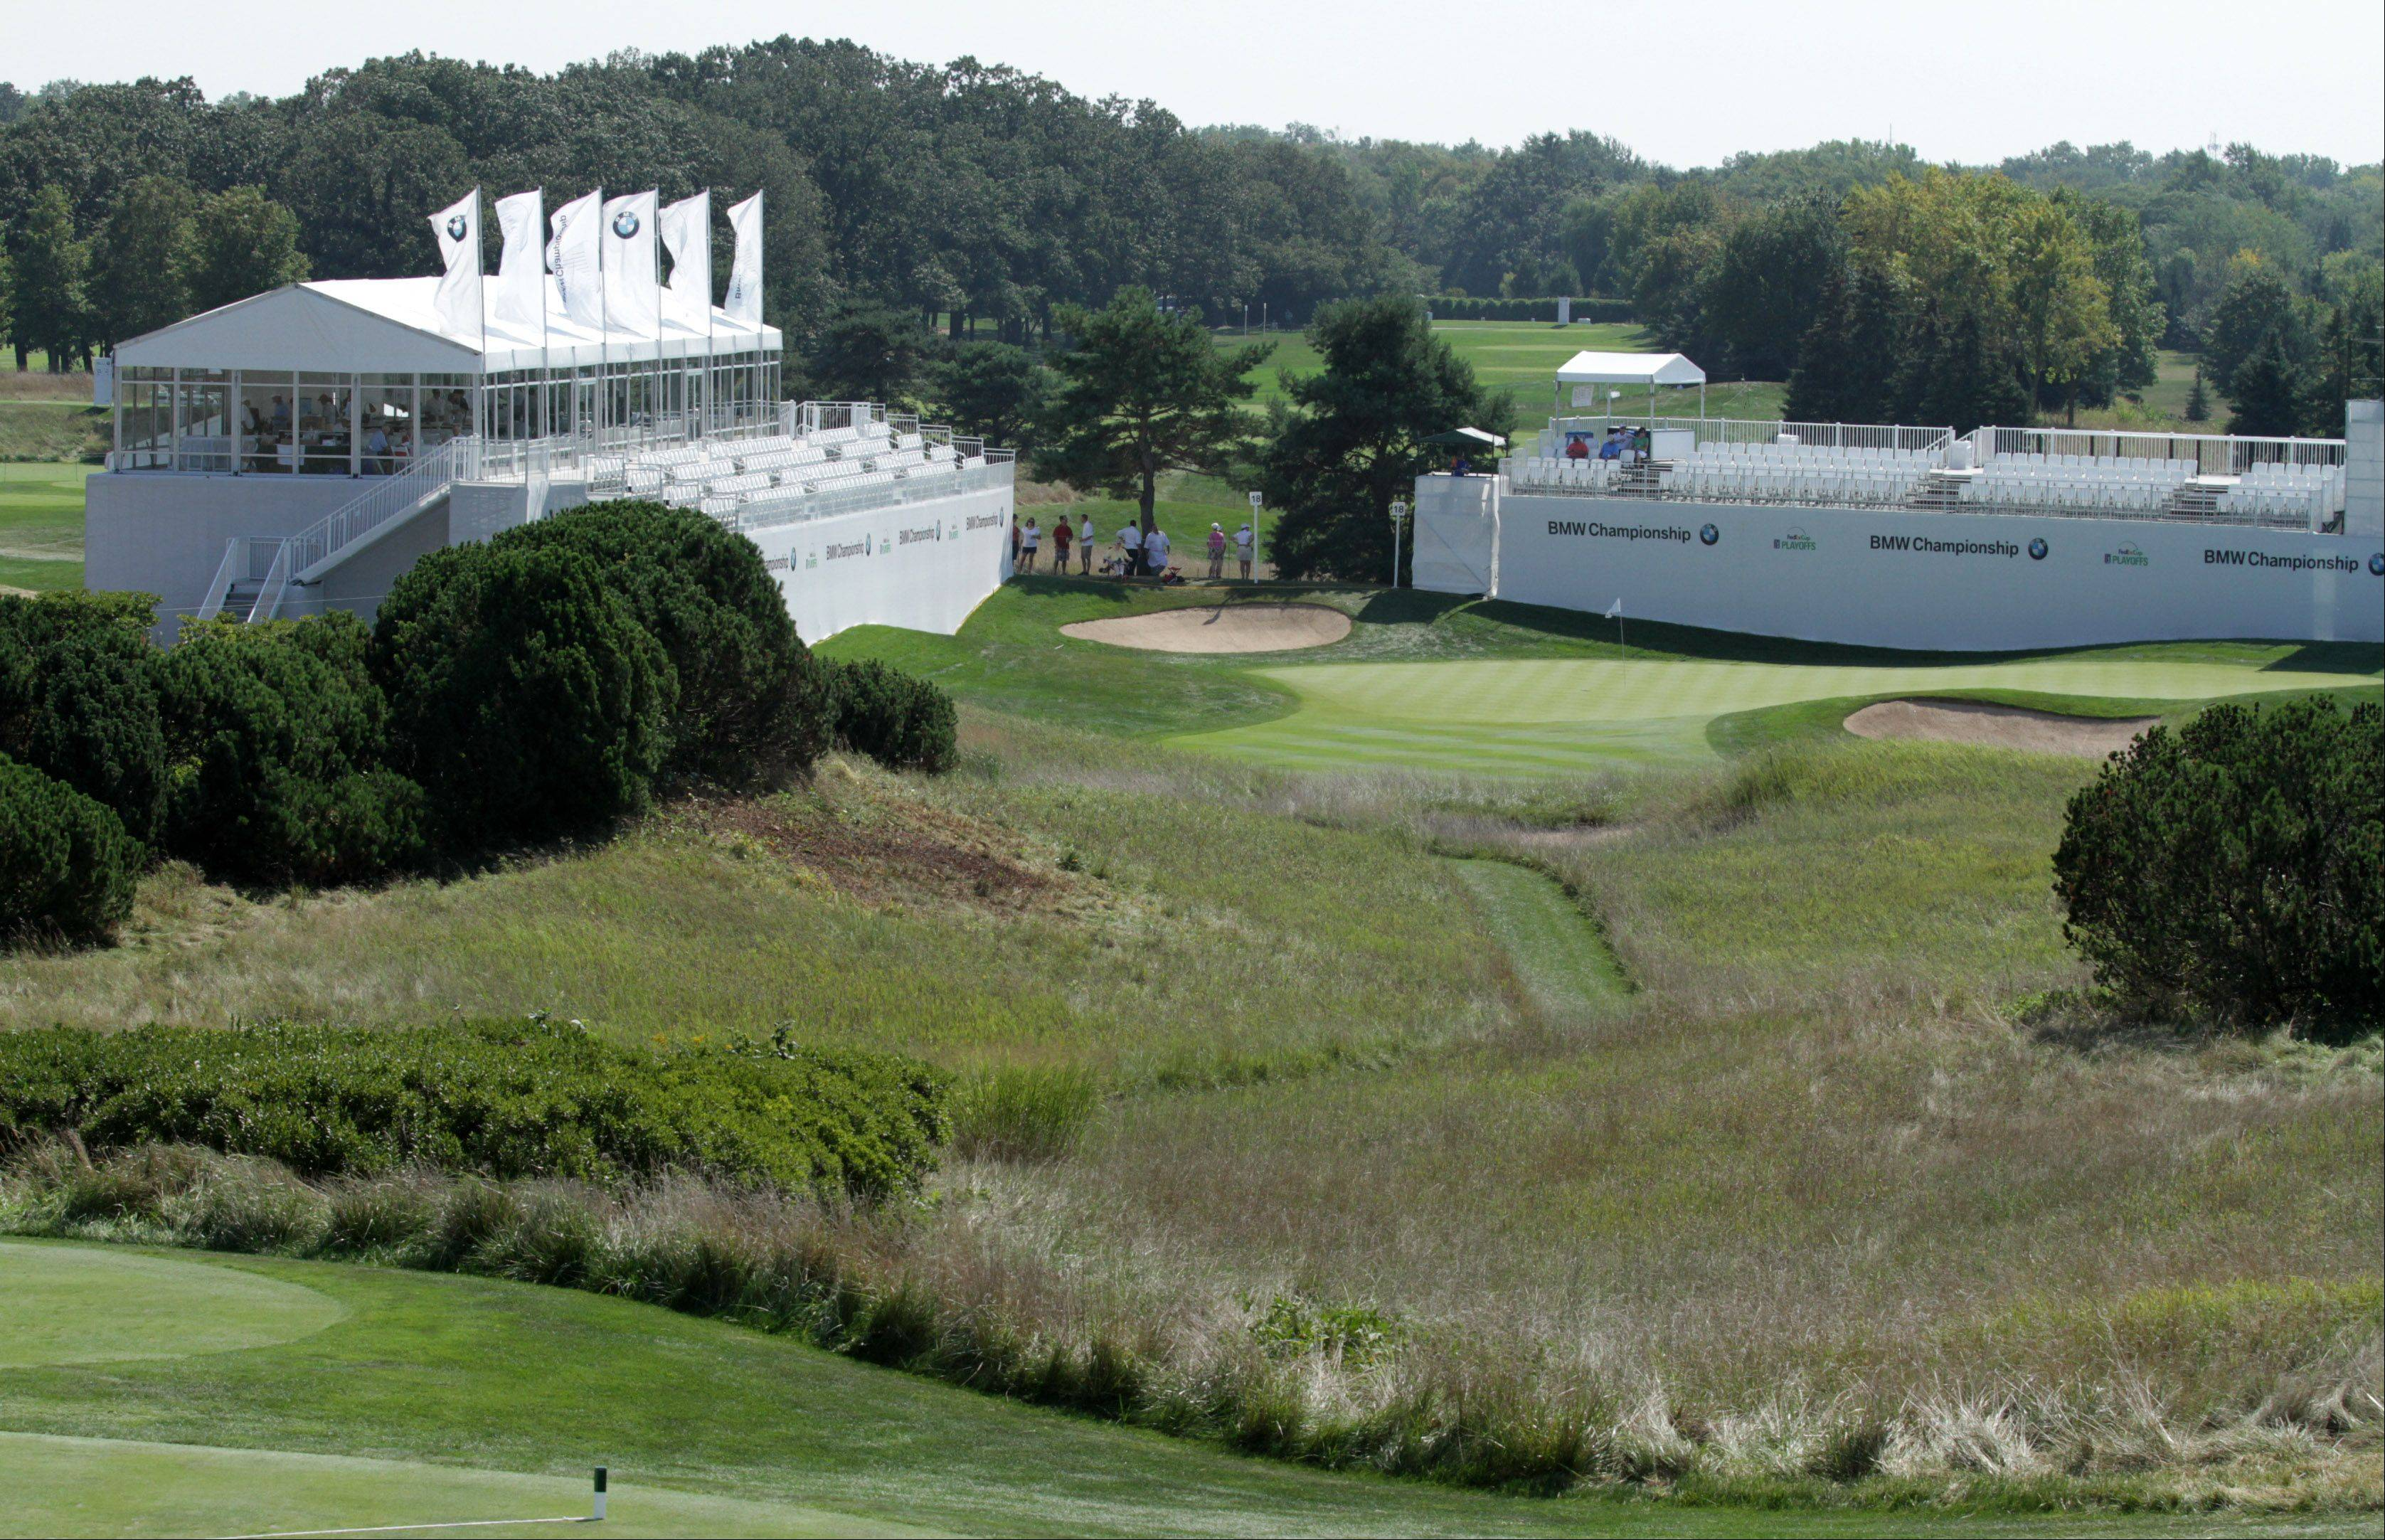 Many of the holes at Conway Farms Golf Club in Lake Forest feature large grandstands set up for the BMW Championship.